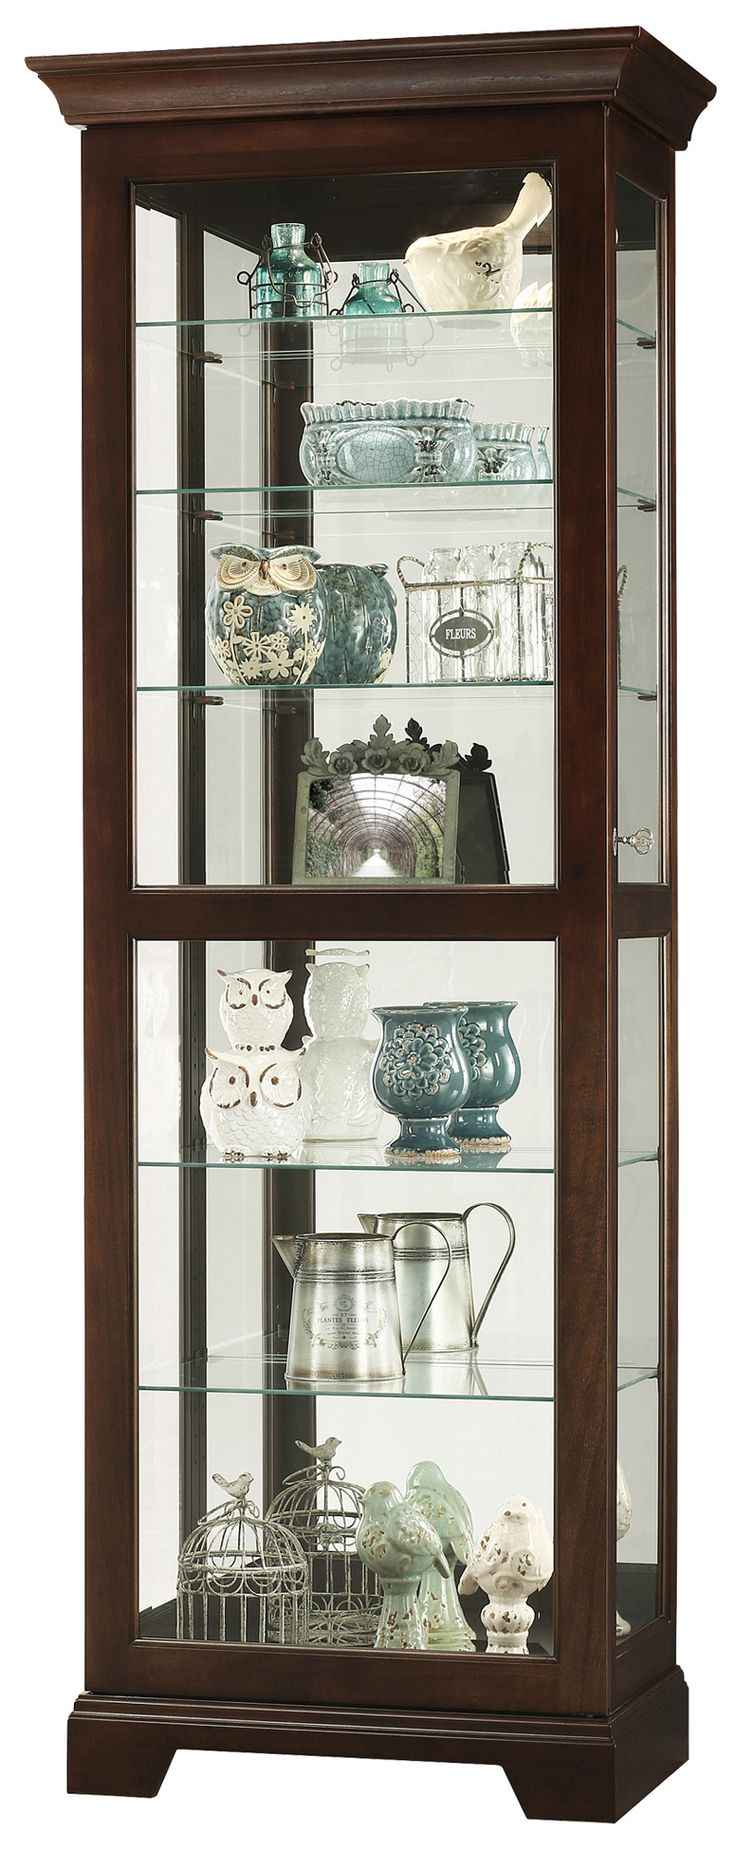 Martindale II Curio Cabinet | Howard Miller | Home Gallery Stores